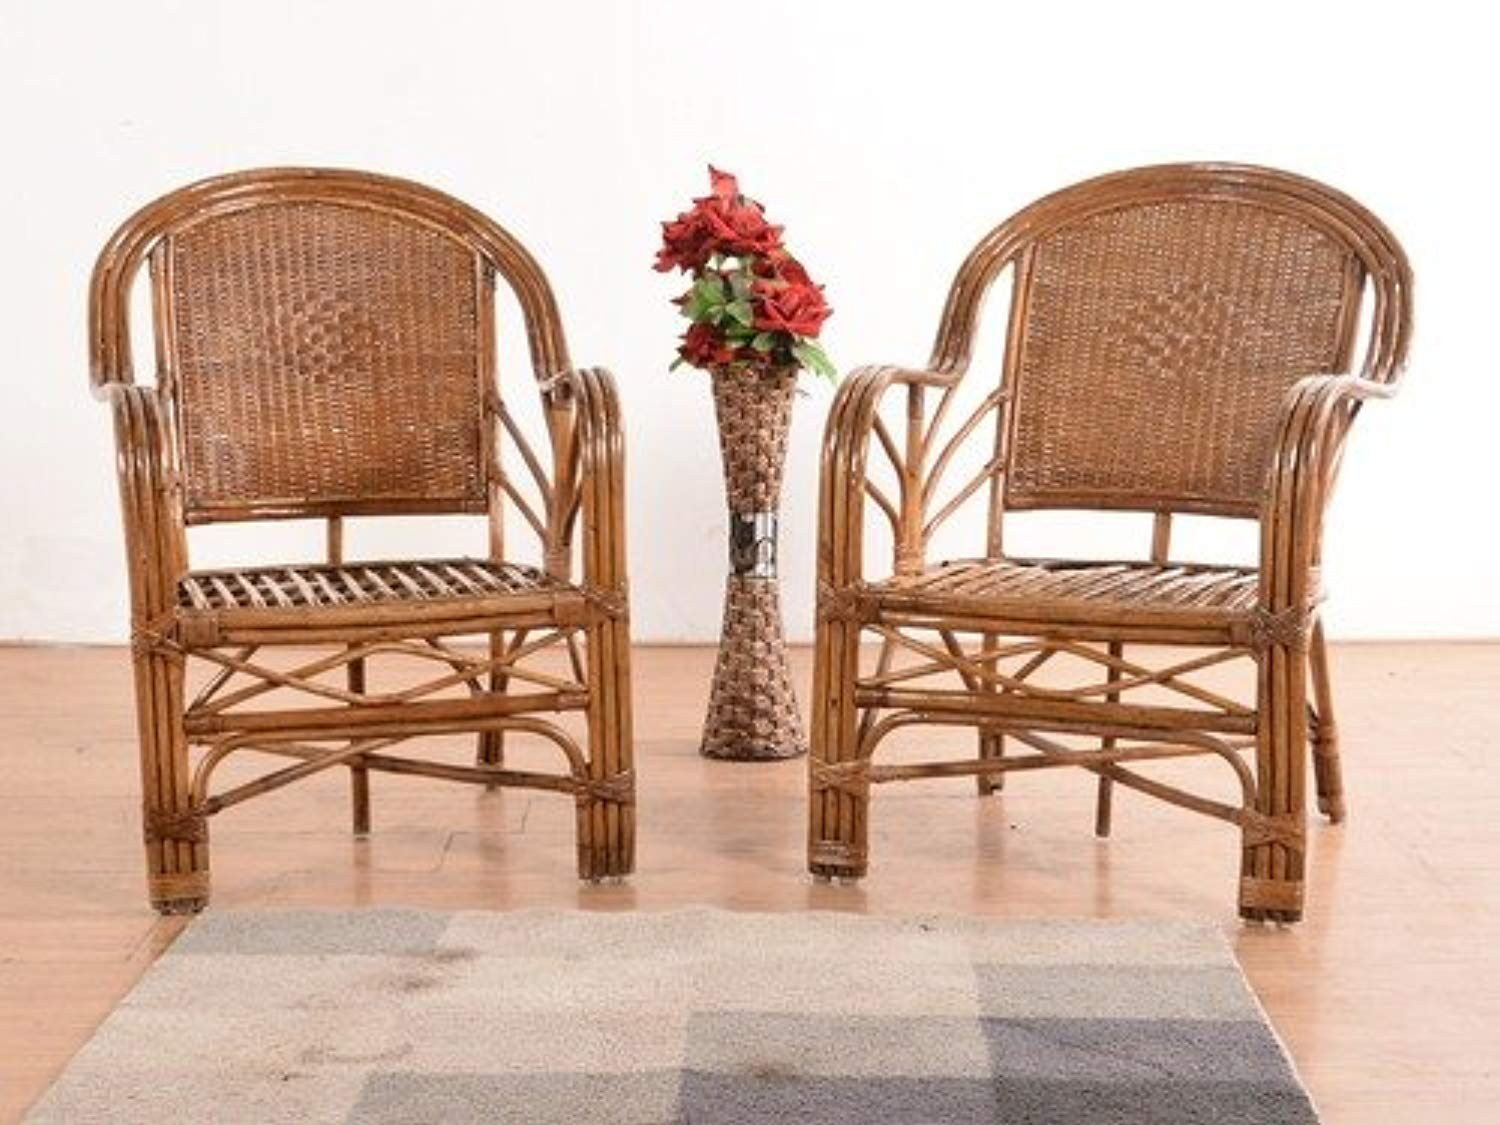 IRA Bamboo Lounge Chair (Set of 2) - IRA Furniture